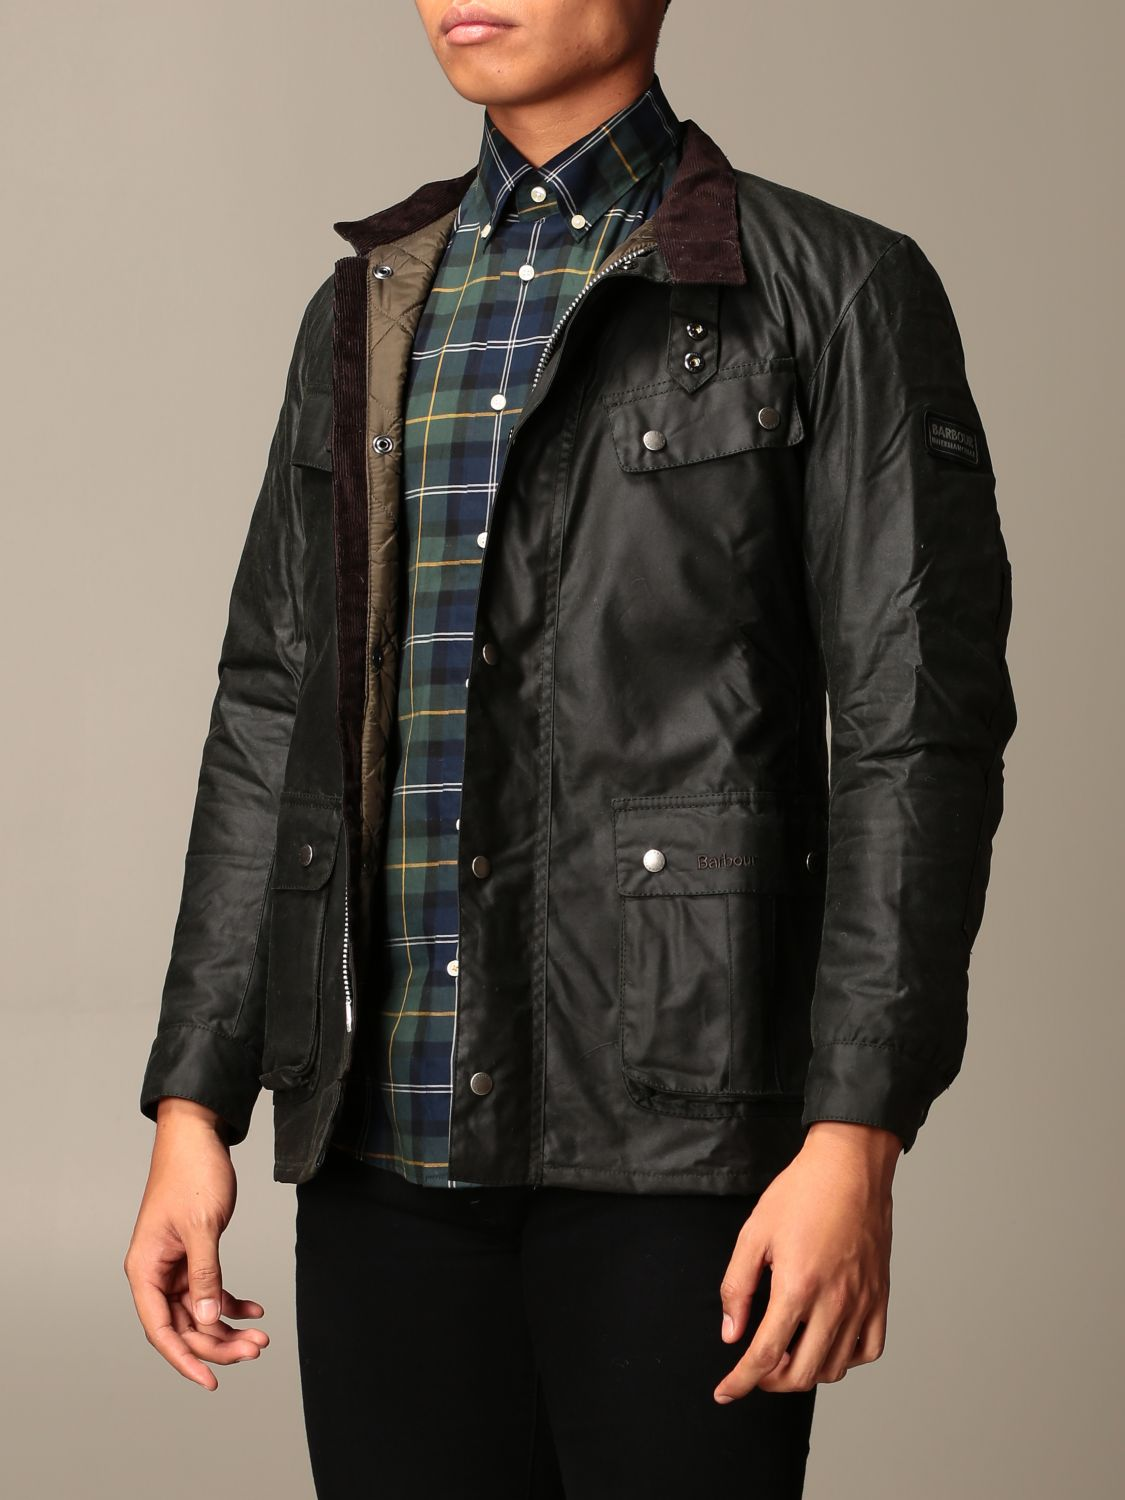 Jacket Barbour: Jacket men Barbour green 3